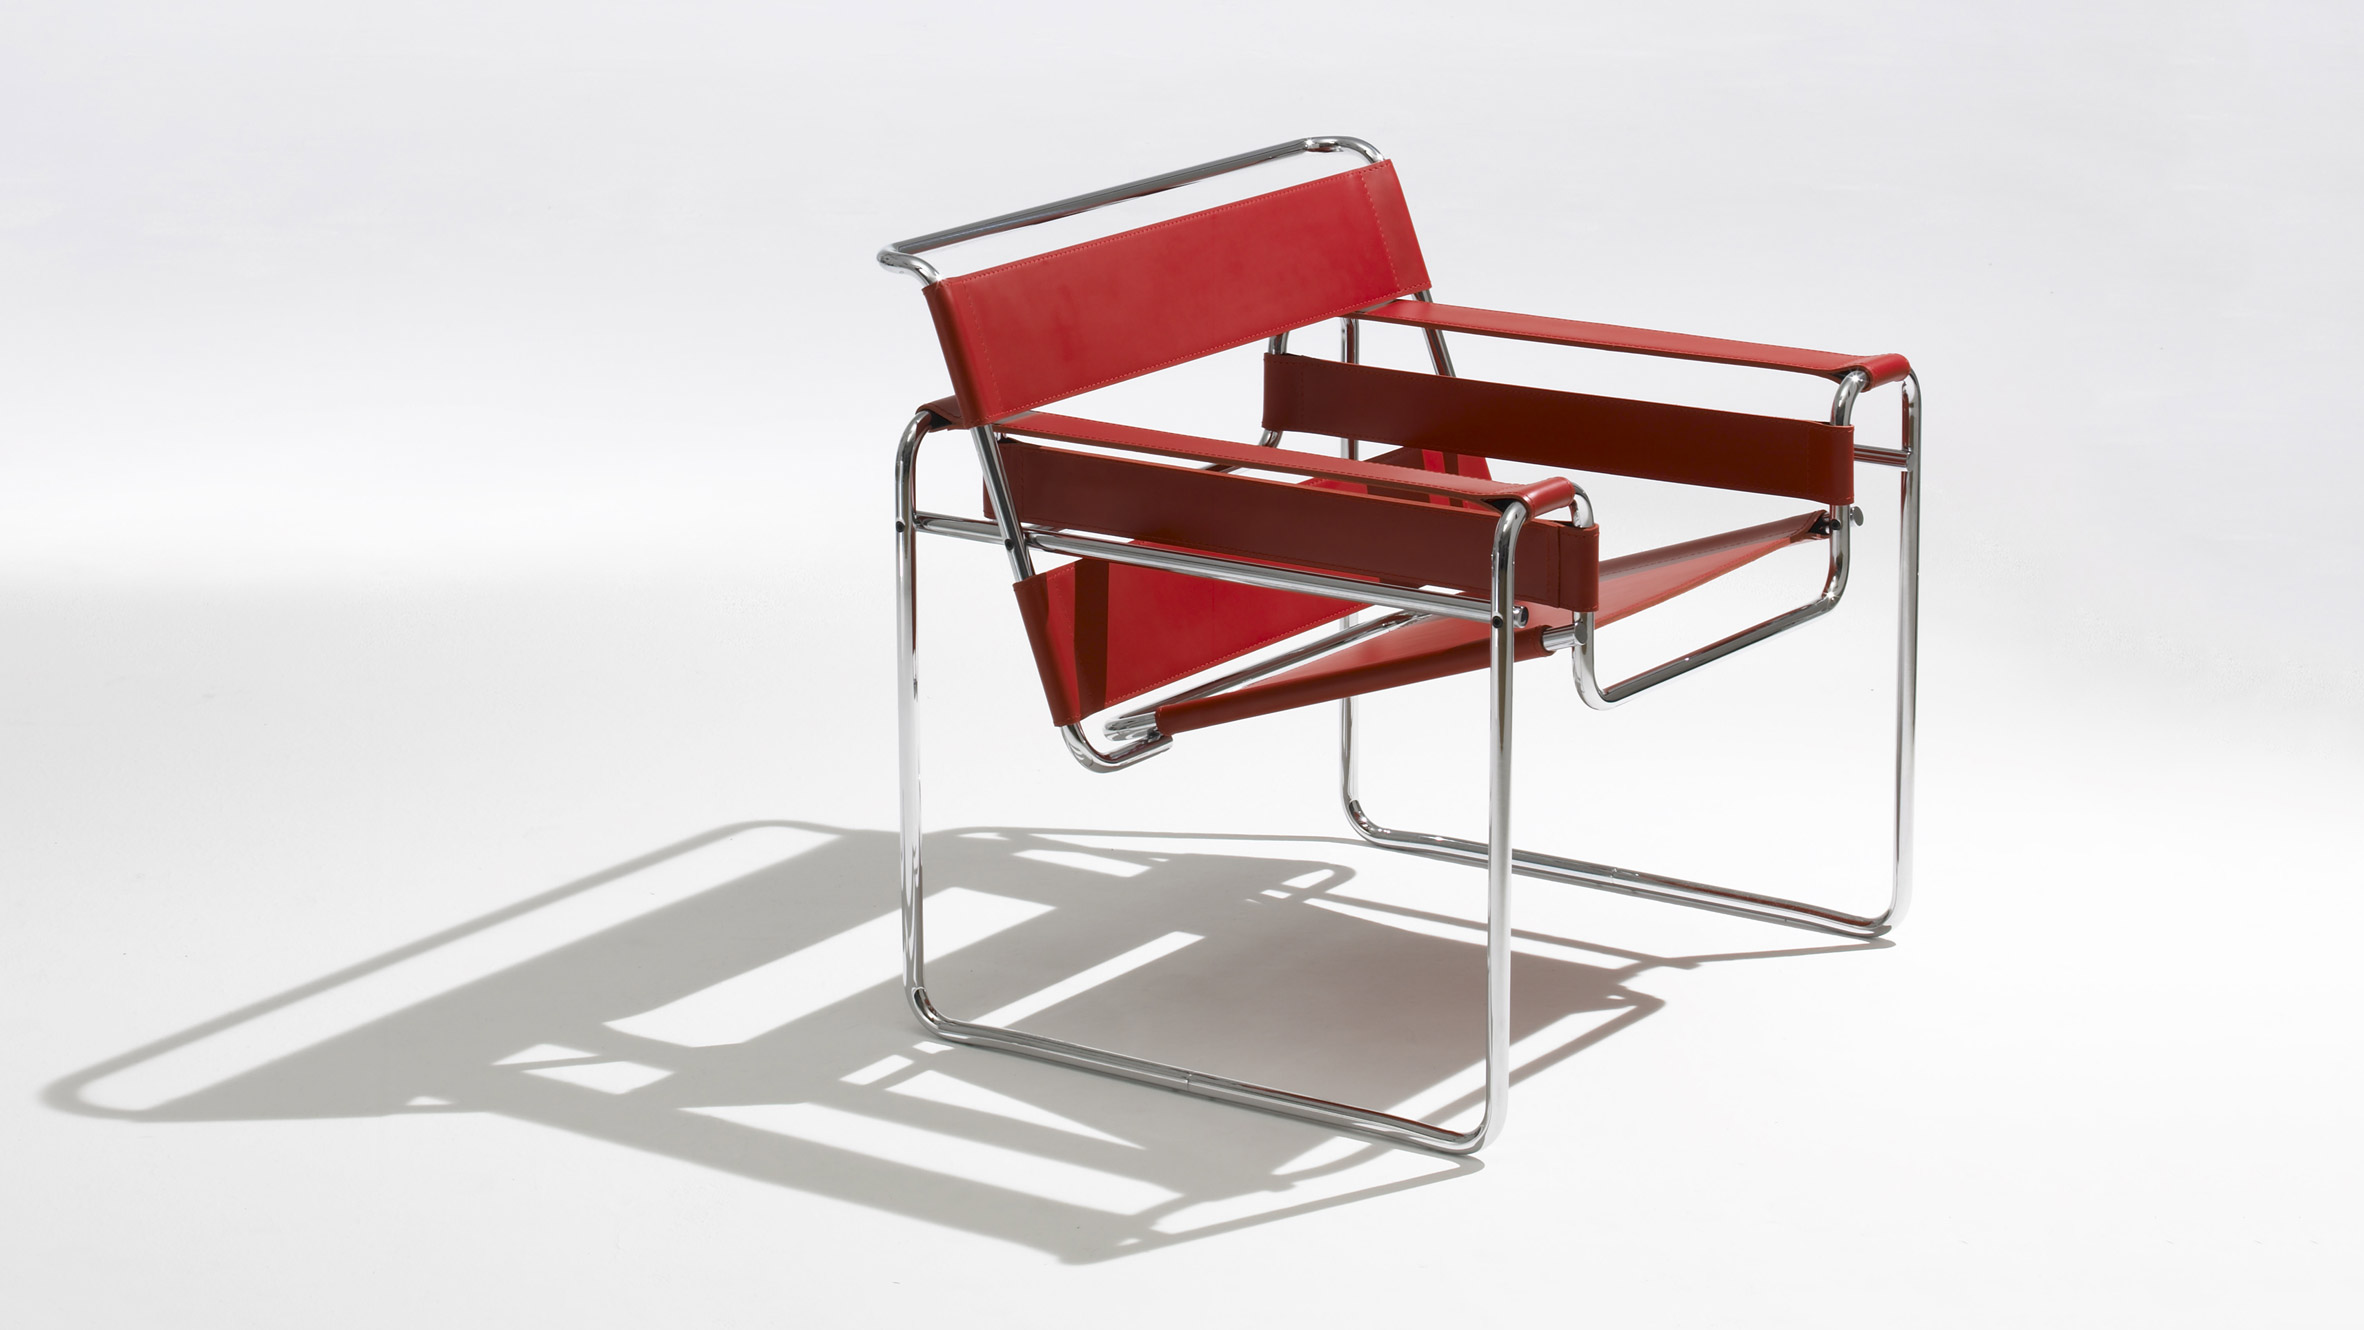 Bauhausstil Zürich 10 Iconic Bauhaus Furniture Designs Chairs Tables A Lamp And A